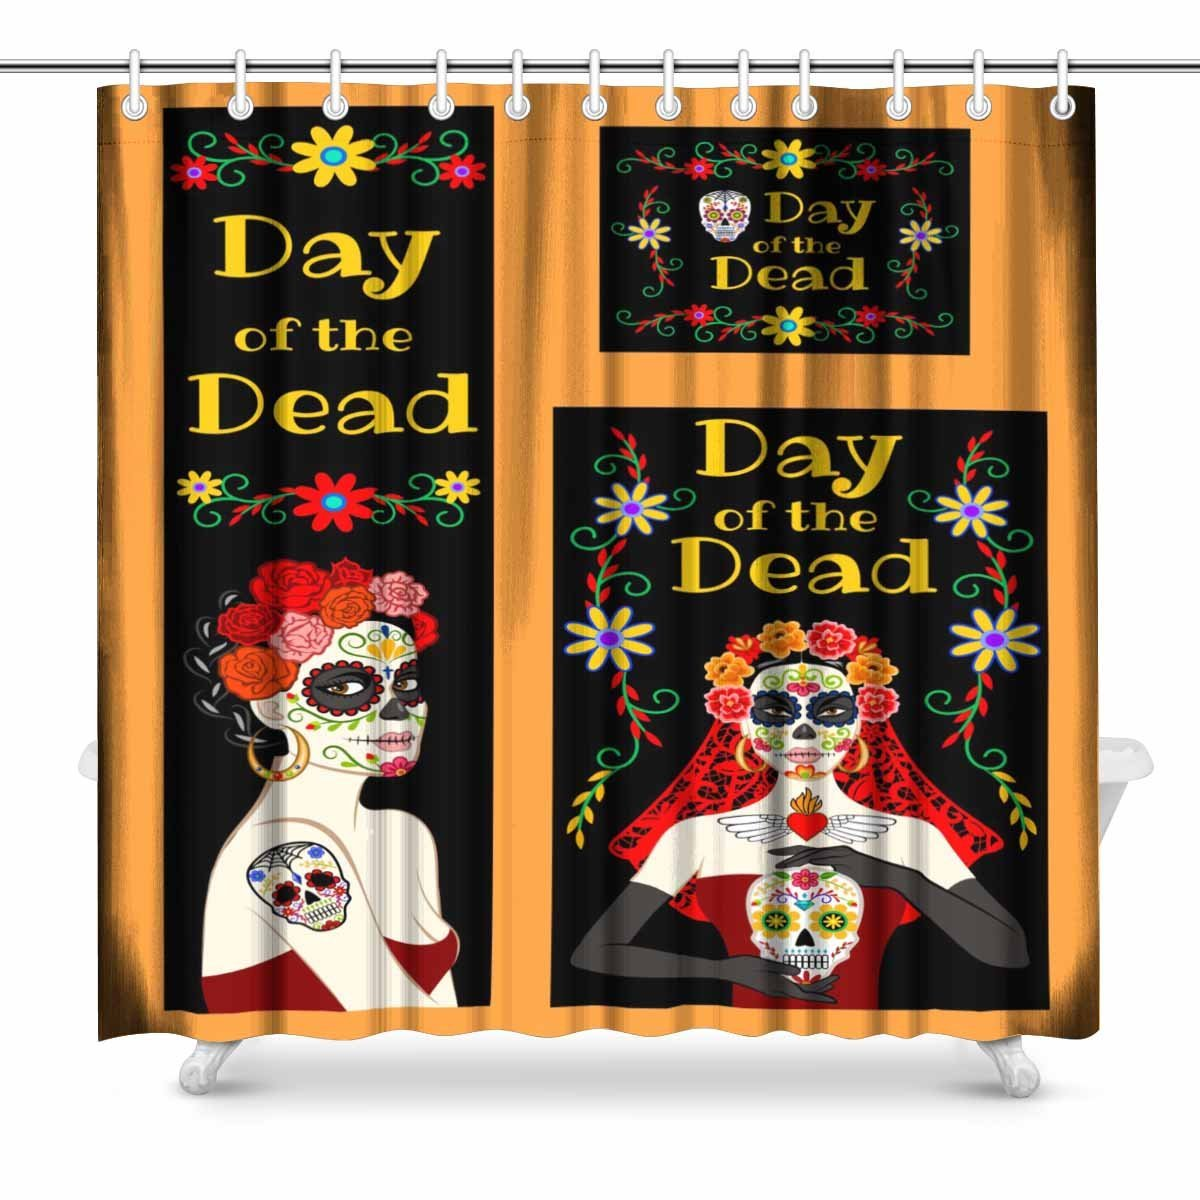 Day Of The Dead Bathroom Set: Aplysia Mexican Day Of The Dead Fabric Bathroom Shower